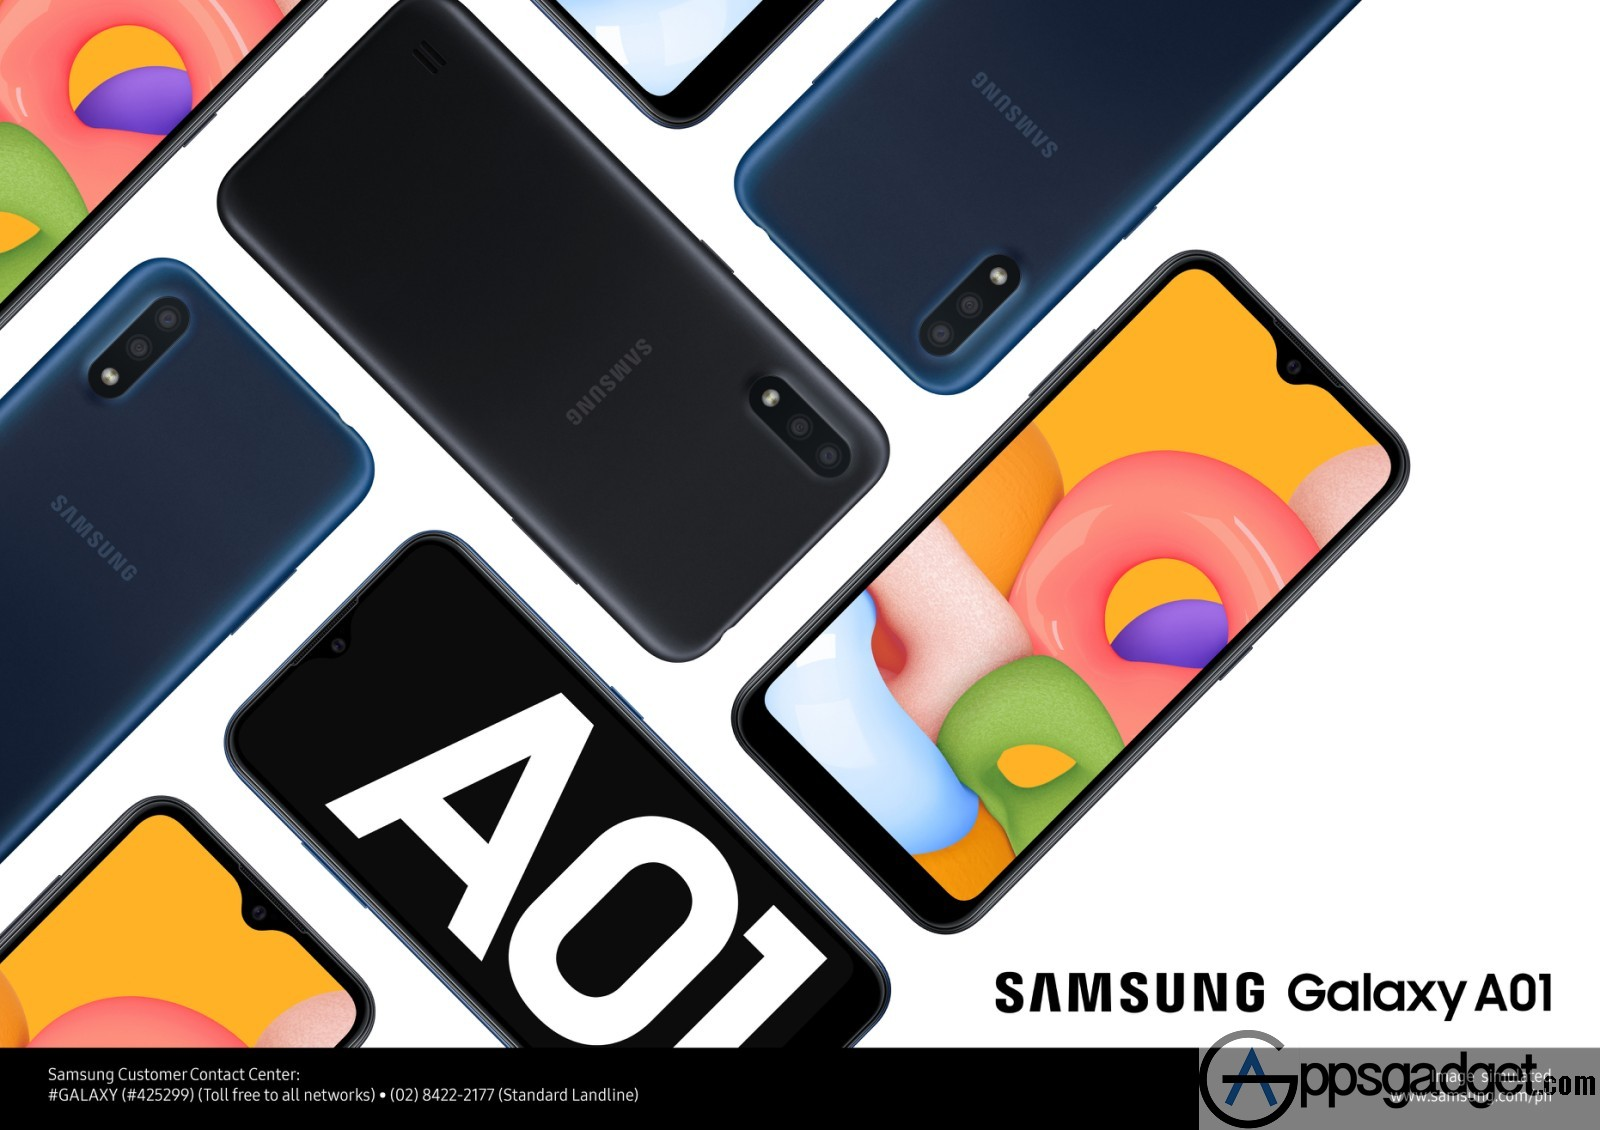 SAMSUNG Galaxy A01 with Infinity-V Display, 30000 mAh battery and 512GB expandable storage for Only PHP5,490